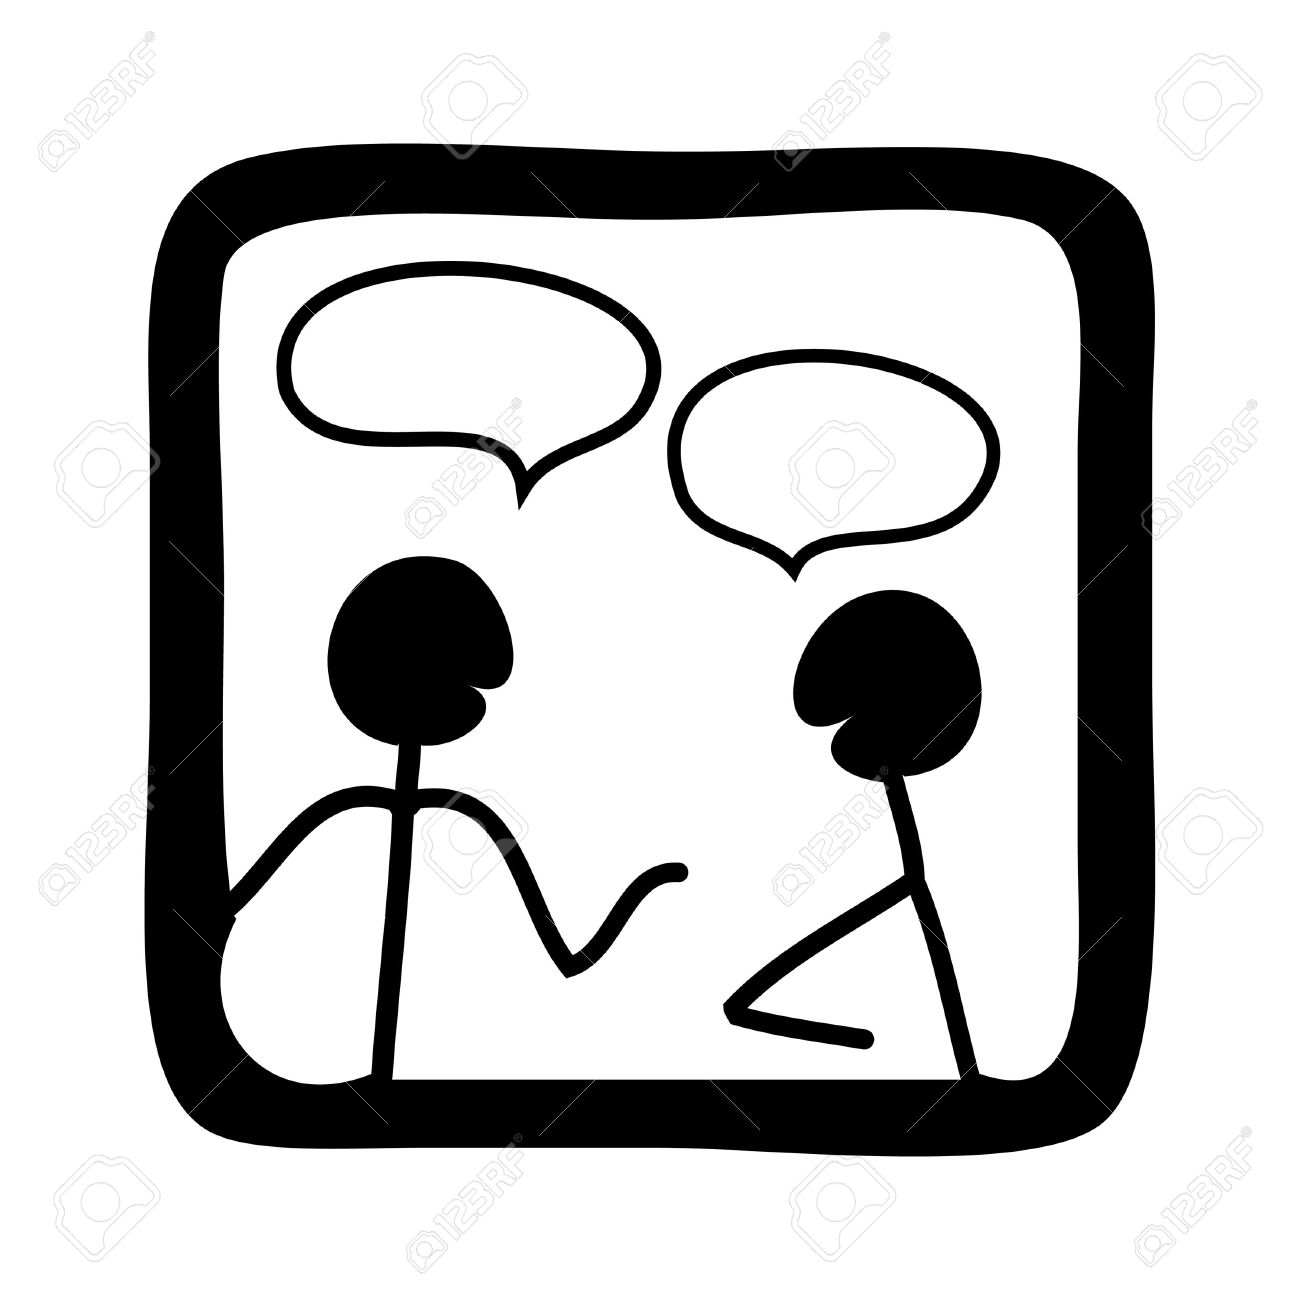 Talking Clipart Stock Photo, Picture And Royalty Free Image. Image.